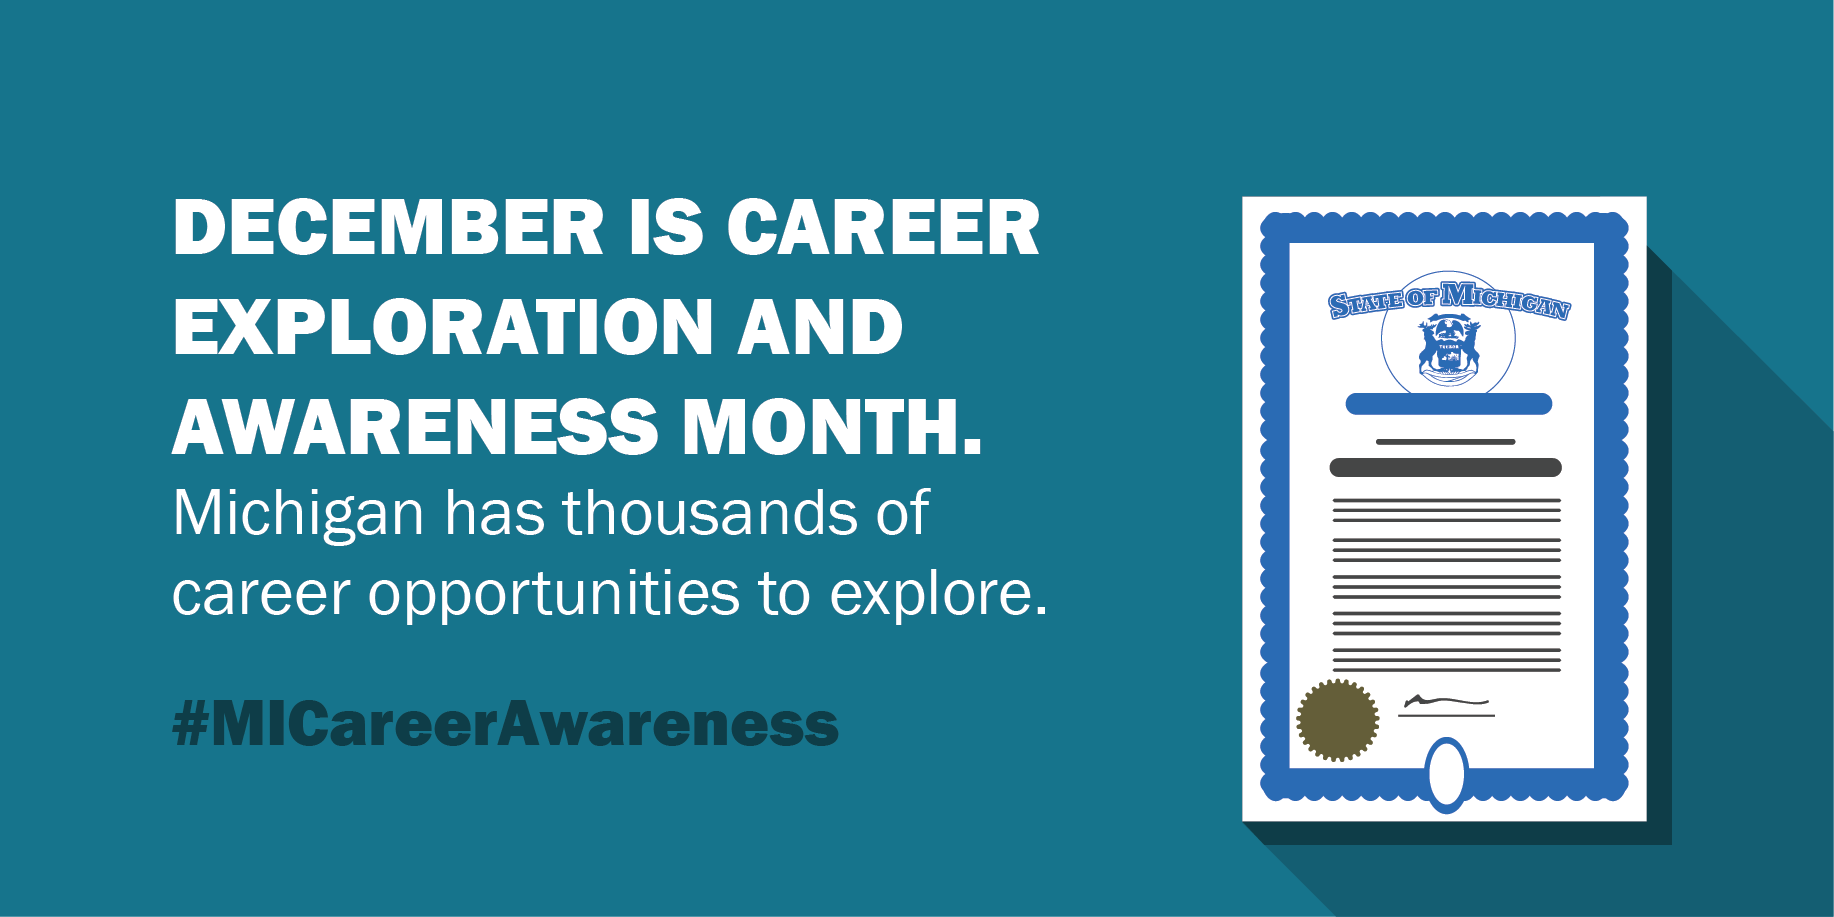 """Stock photograph from the State of Michigan that reads, """"December is Career Exploration and Awareness Month. Michigan has thousands of career opportunities to explore. #MICareerAwareness."""""""